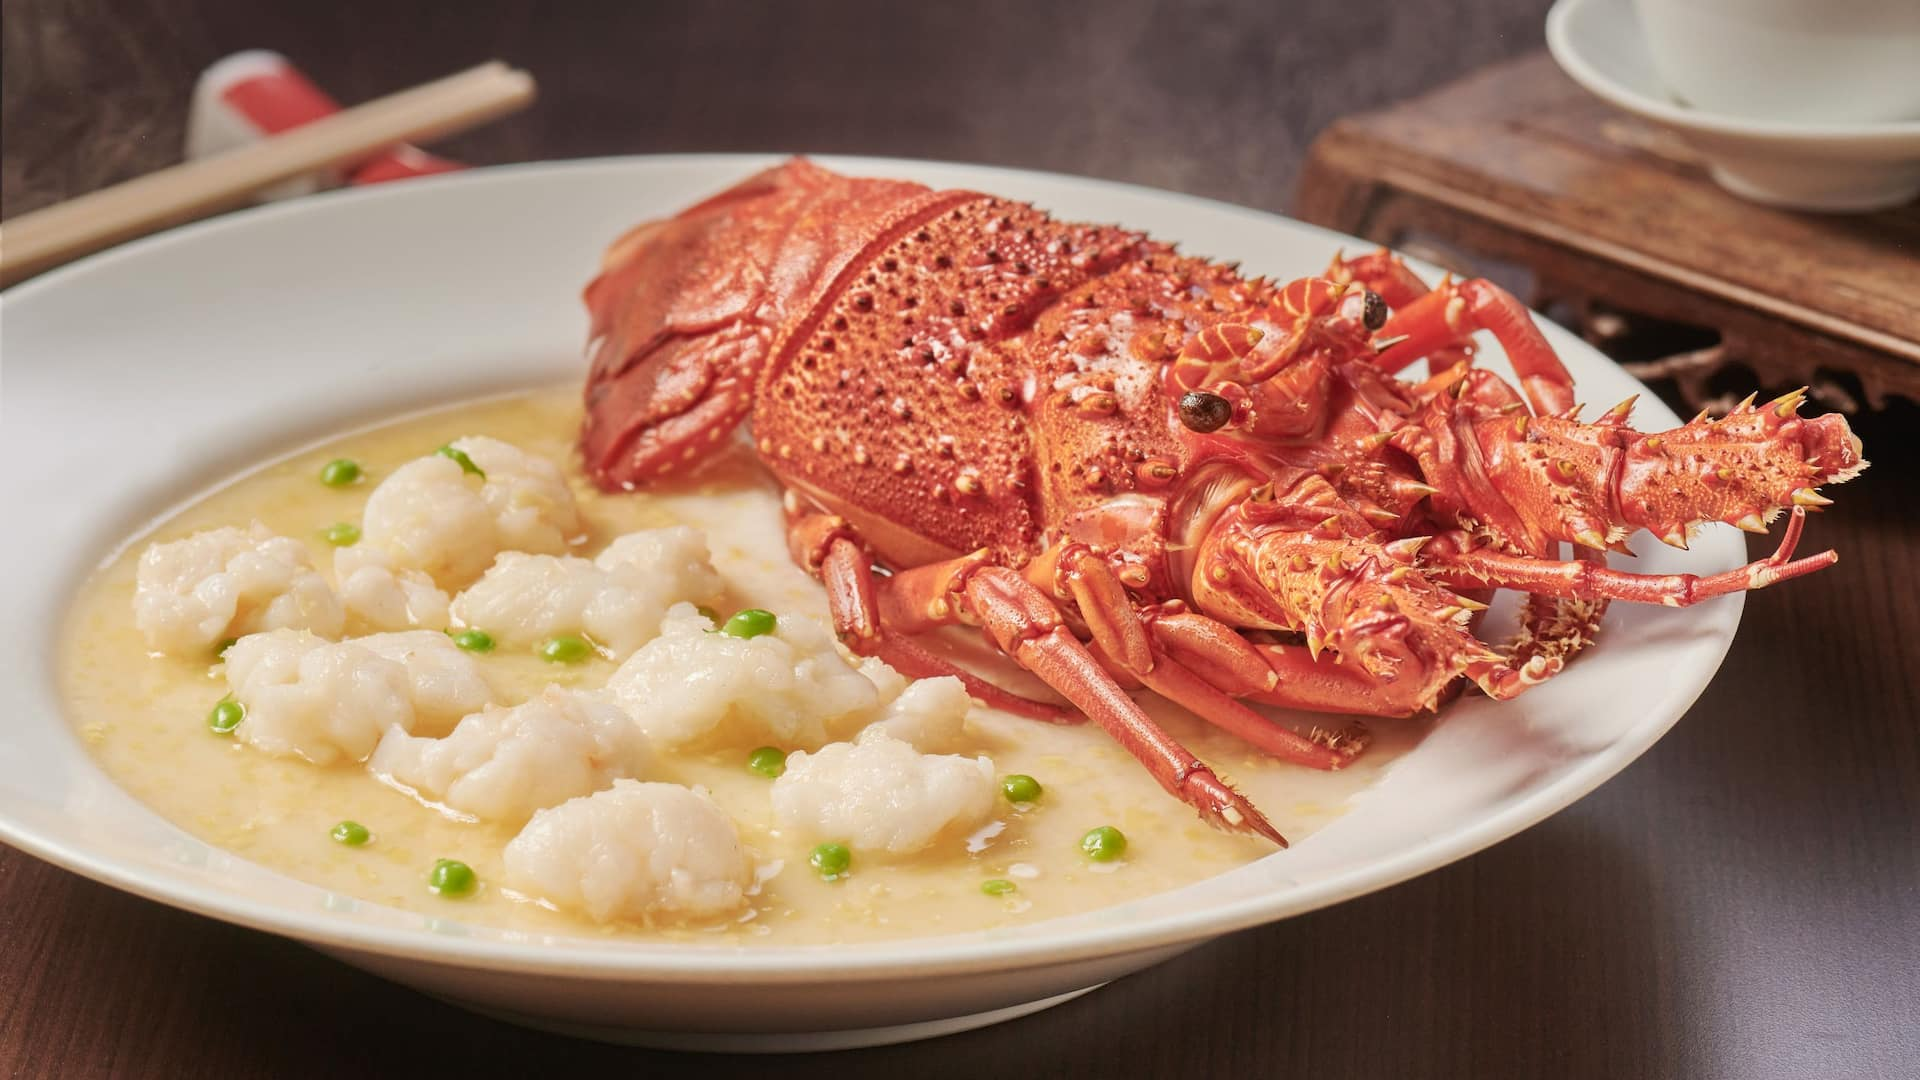 The Chinese Restaurant Steamed lobster, egg white 蛋白蒸龍蝦球